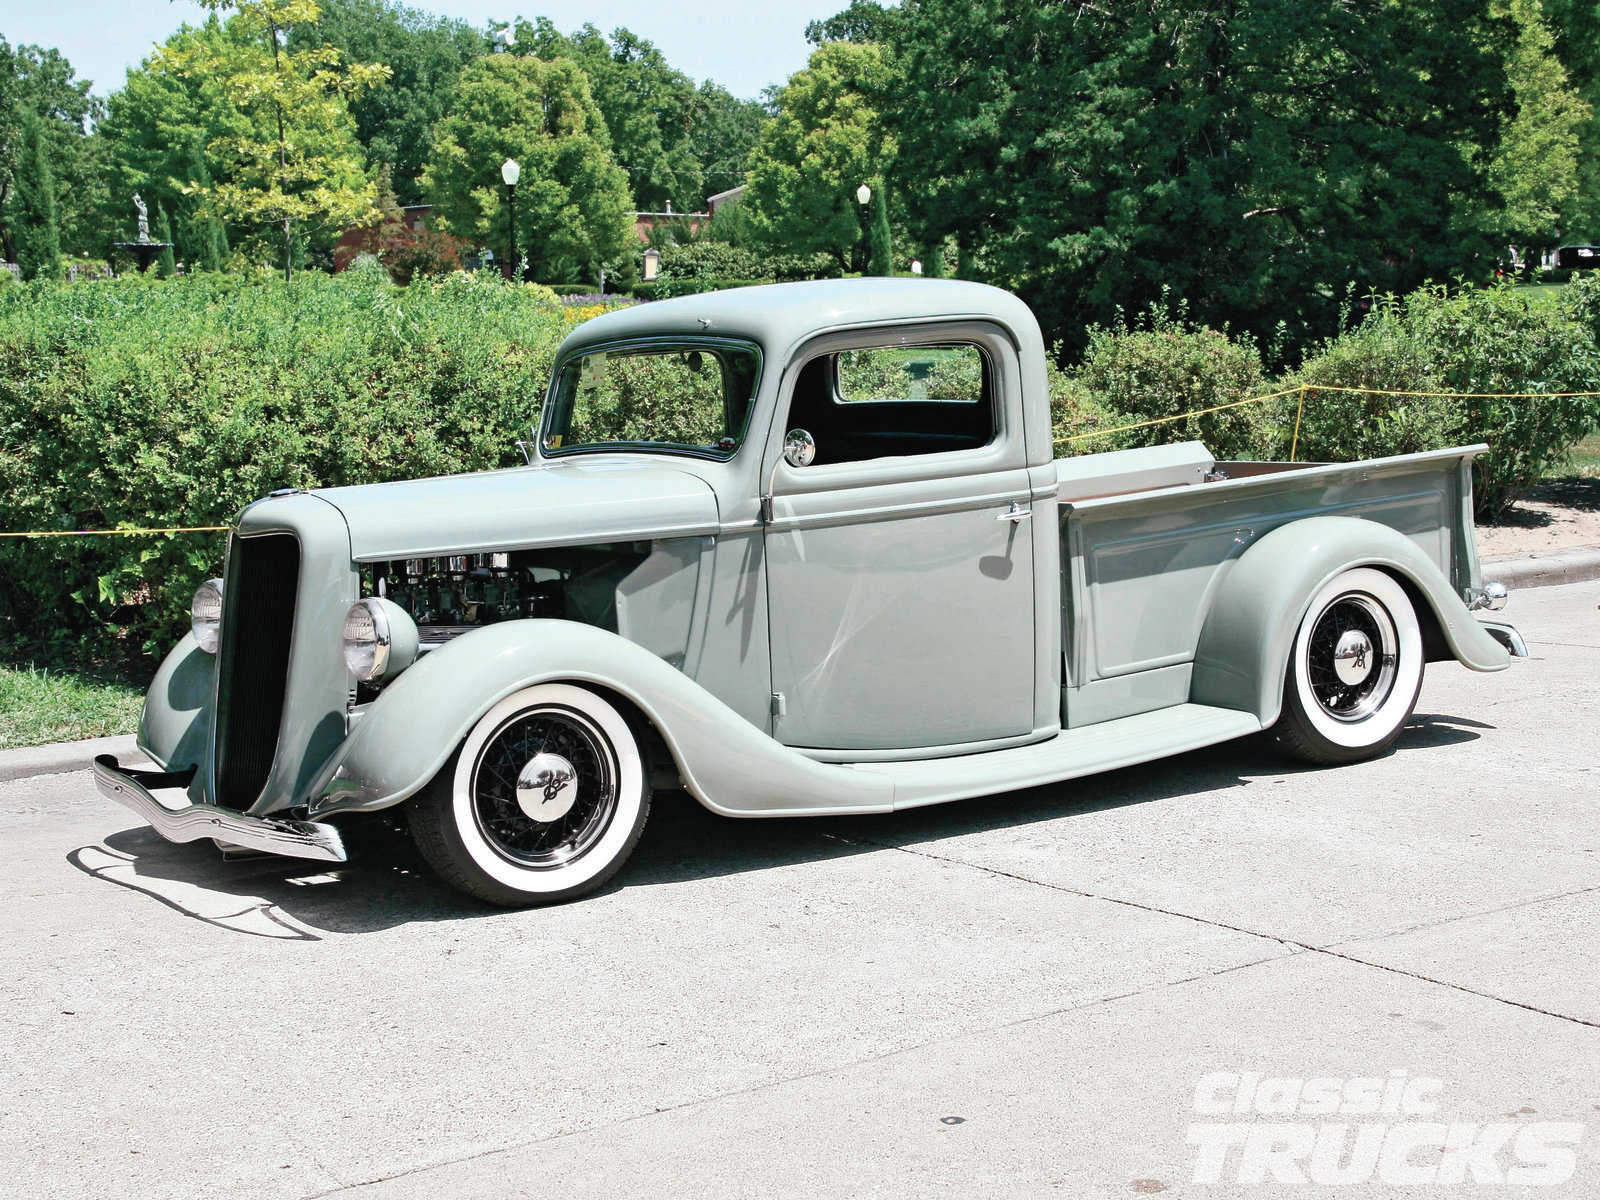 1936 Ford Pickup wallpapers, Vehicles